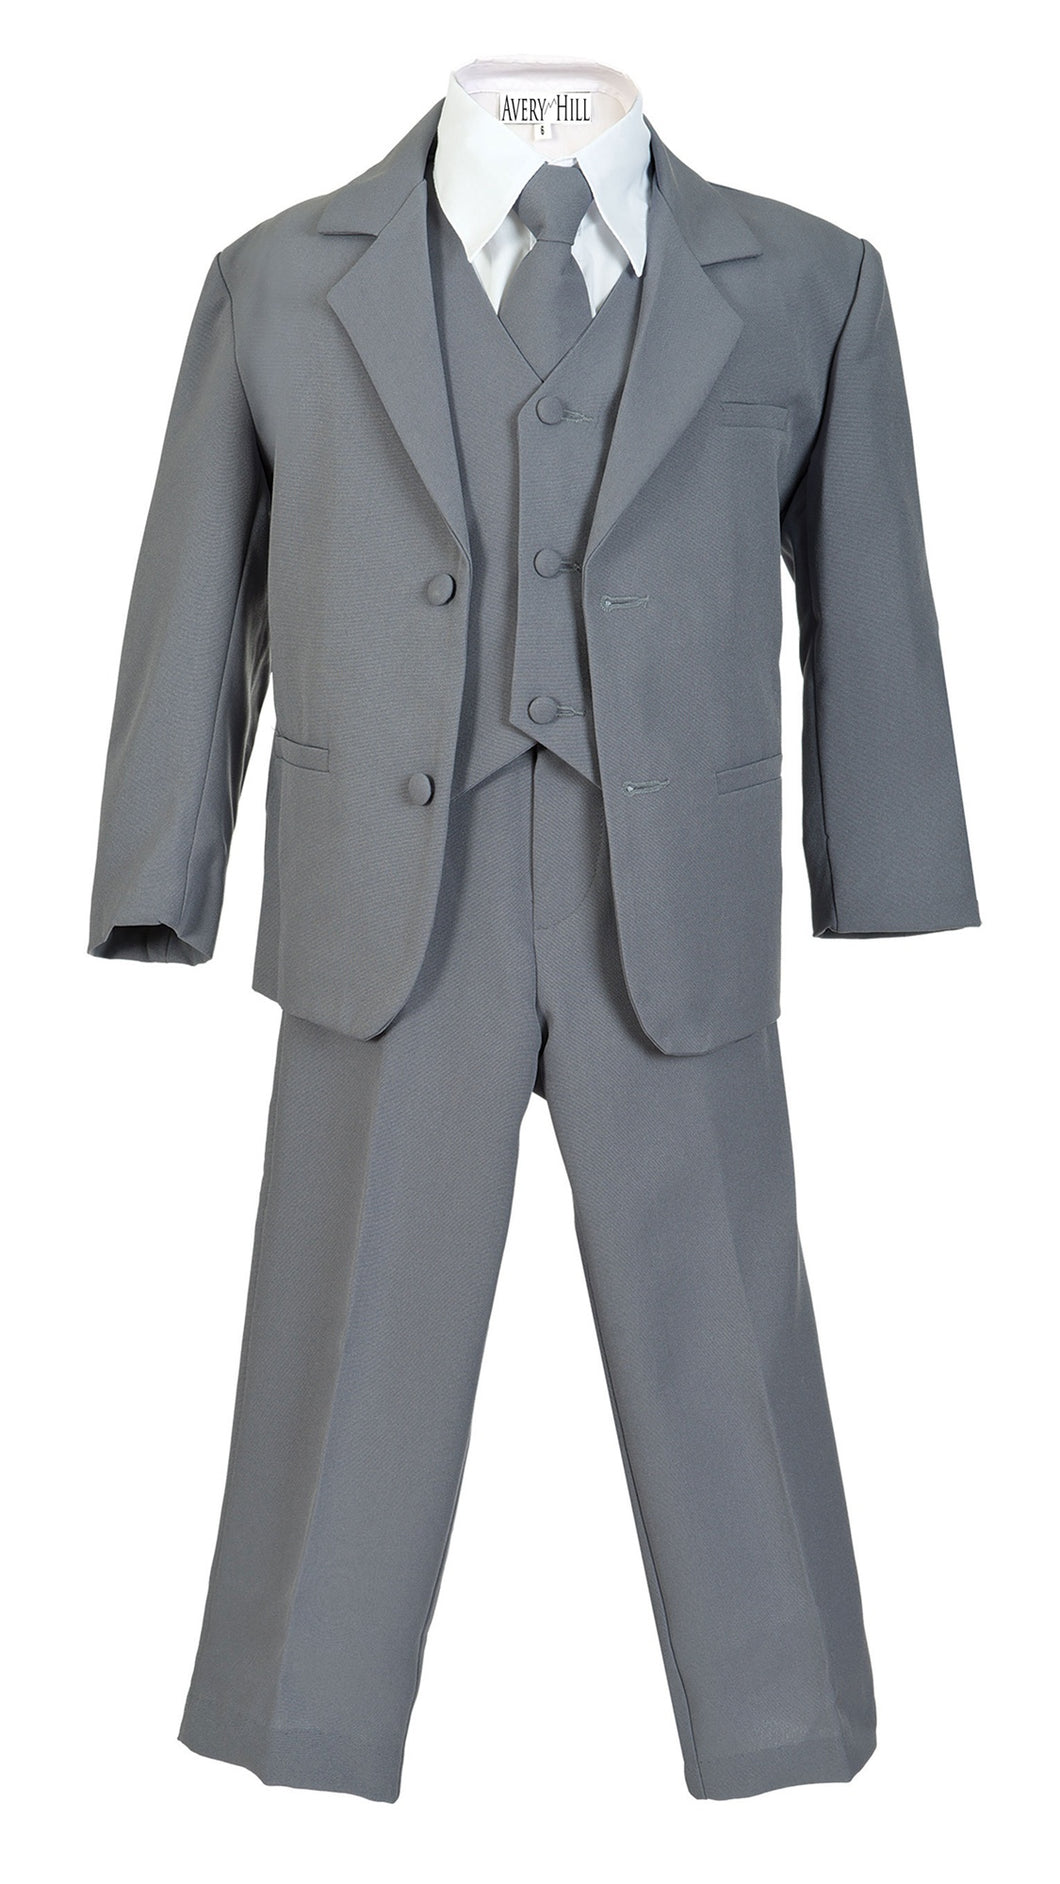 Braveman  3 Piece Little Boy's  Suit Including Shirt And Tie  SKU;008346 Color- Light Gray Size - 7 Small